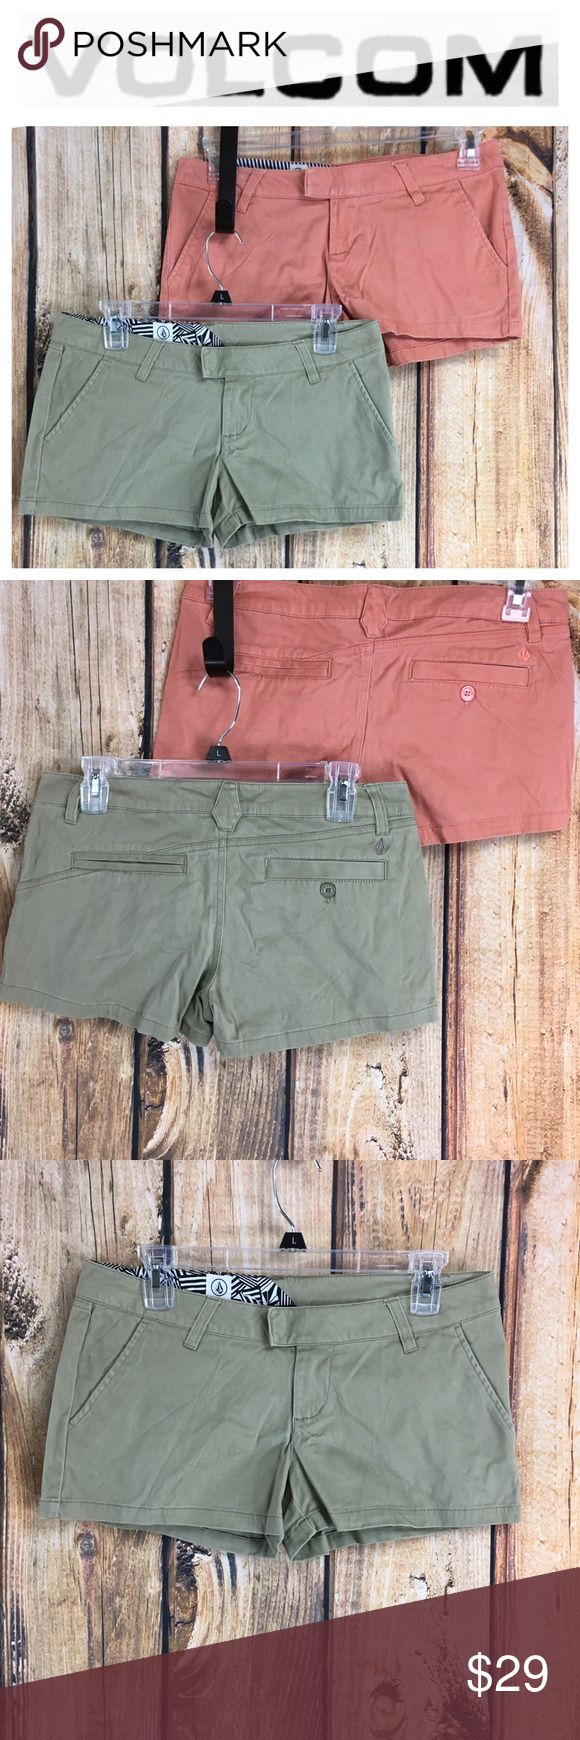 """💸Set of two Volcom shorts in size 5 💸Set of two Volcom shorts in size 5   Measurements are approximate  Inseam 2"""" Rise 7"""" Waist laying flat 15 1/2"""" across   Shorts are tan and peach colored, both in size 5 with same measurements.  Gentle user wear. No tears holes or stains. Overall in VERY GOOD preOwned condition. 0218ssg3#3220 Volcom Shorts"""